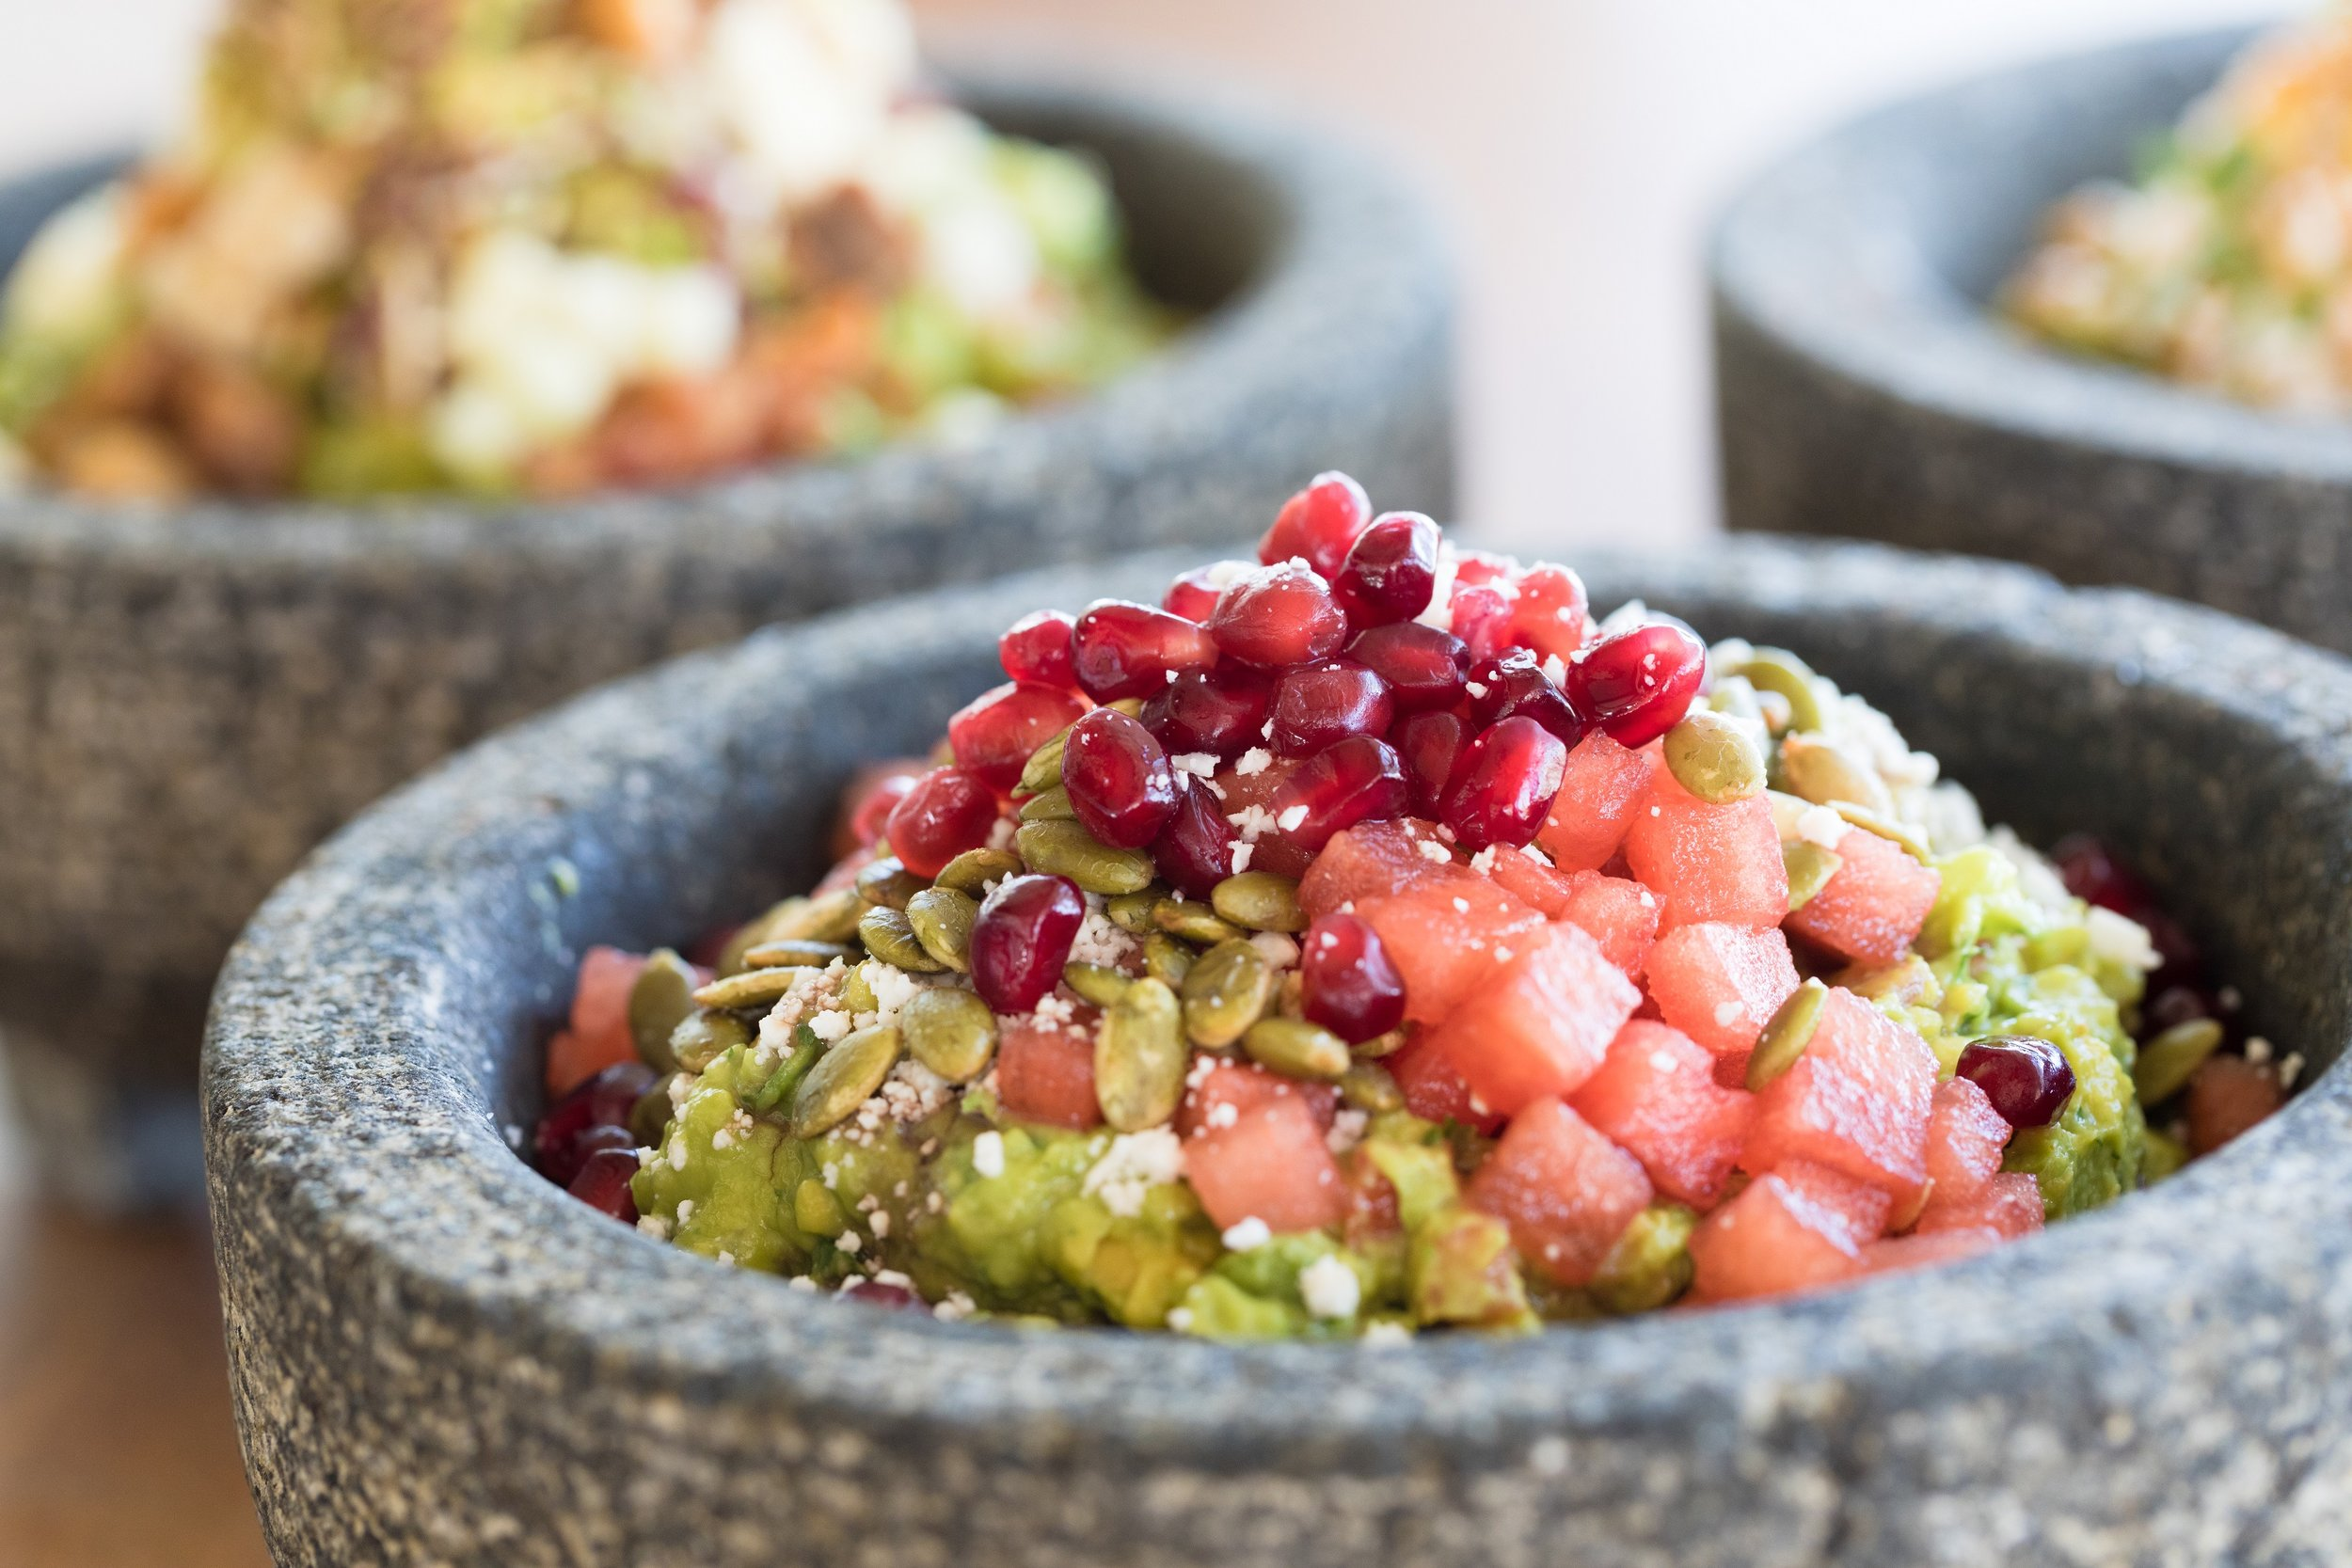 Guac Re-Launch-med res.jpg